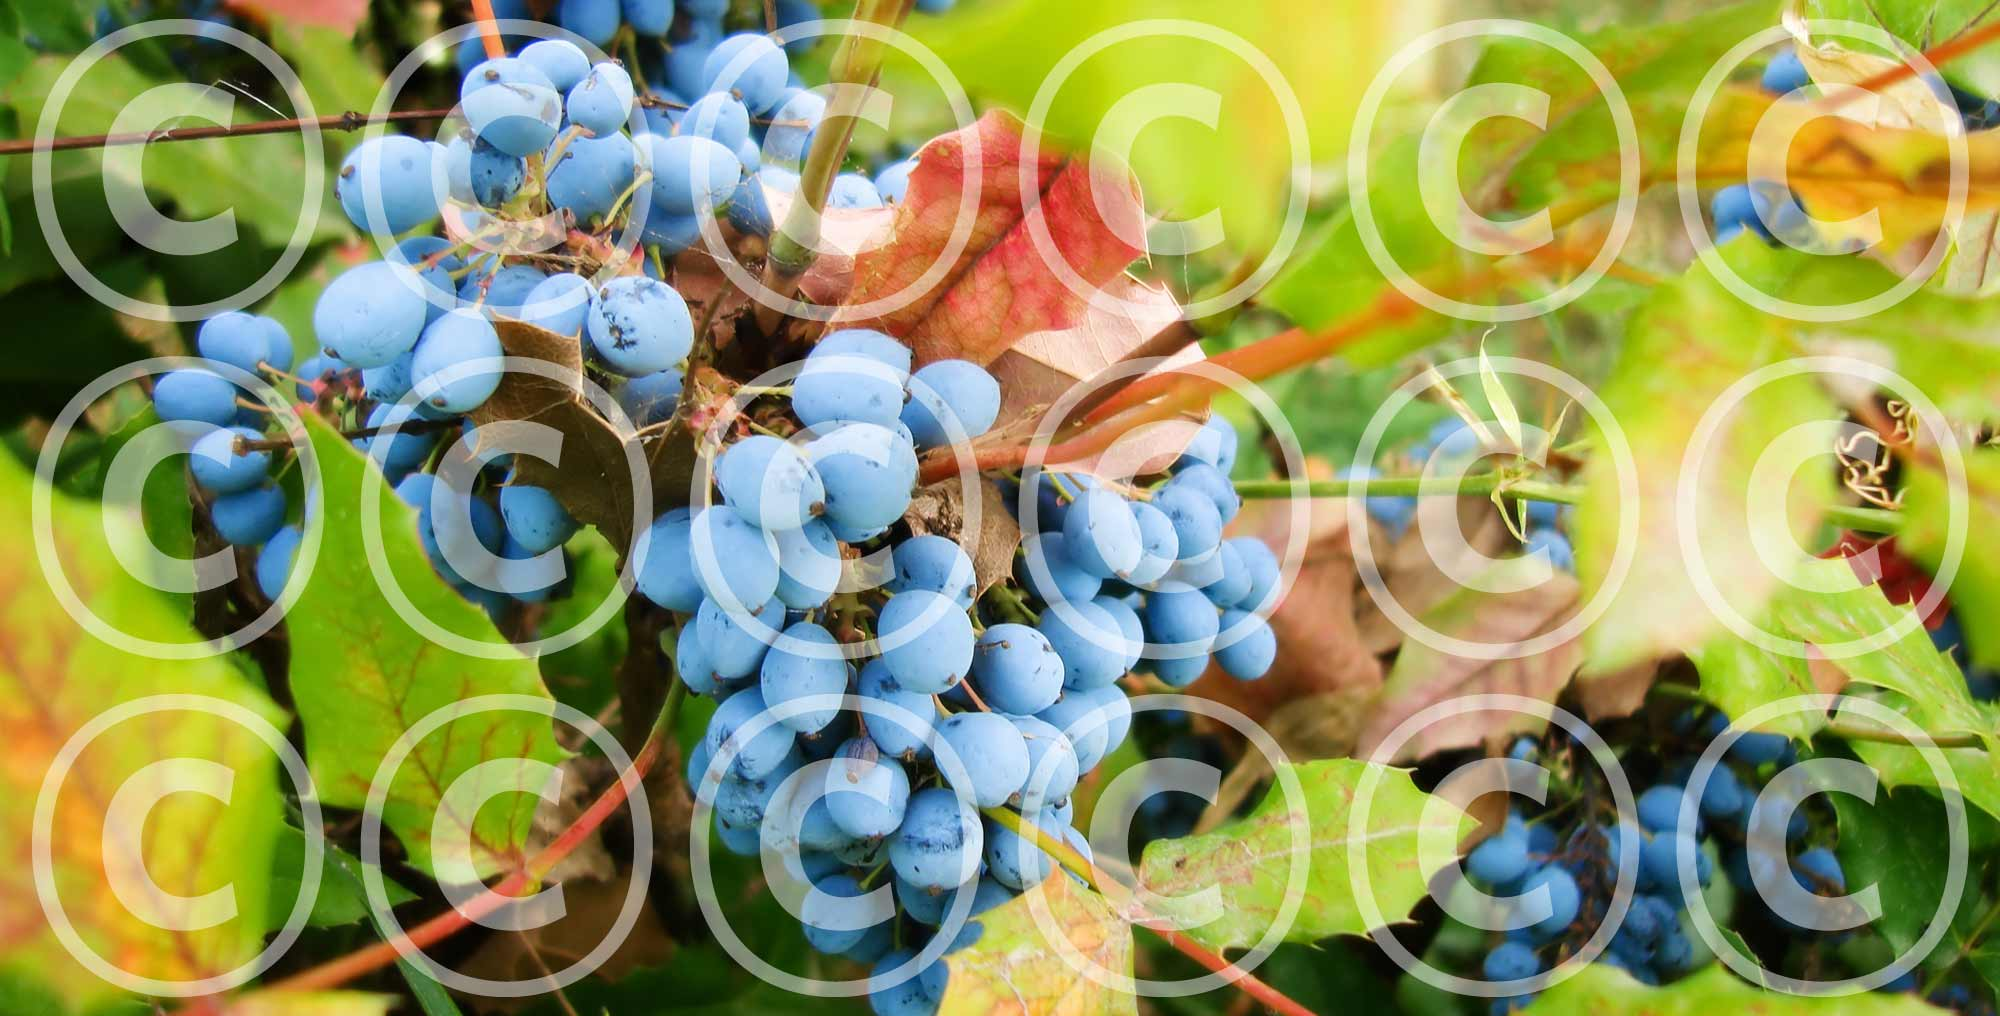 Watermarking your images: Pros & Cons - Featured Image